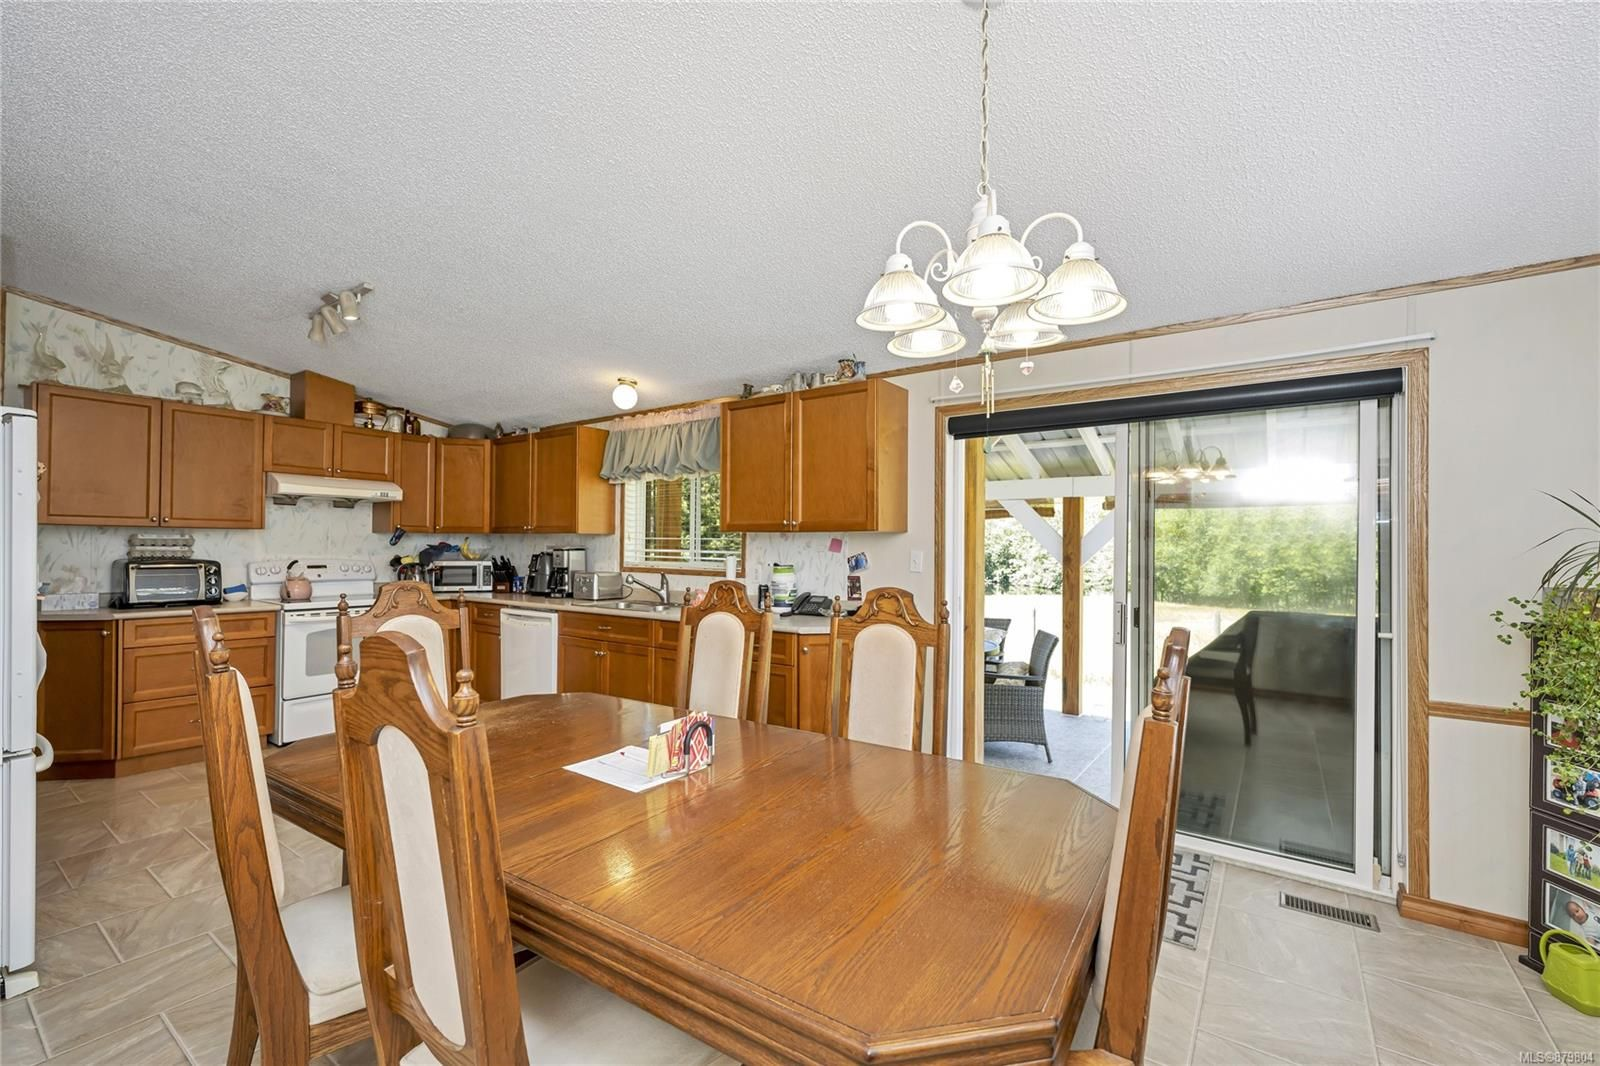 Photo 20: Photos: 3596 Riverside Rd in : ML Cobble Hill Manufactured Home for sale (Malahat & Area)  : MLS®# 879804